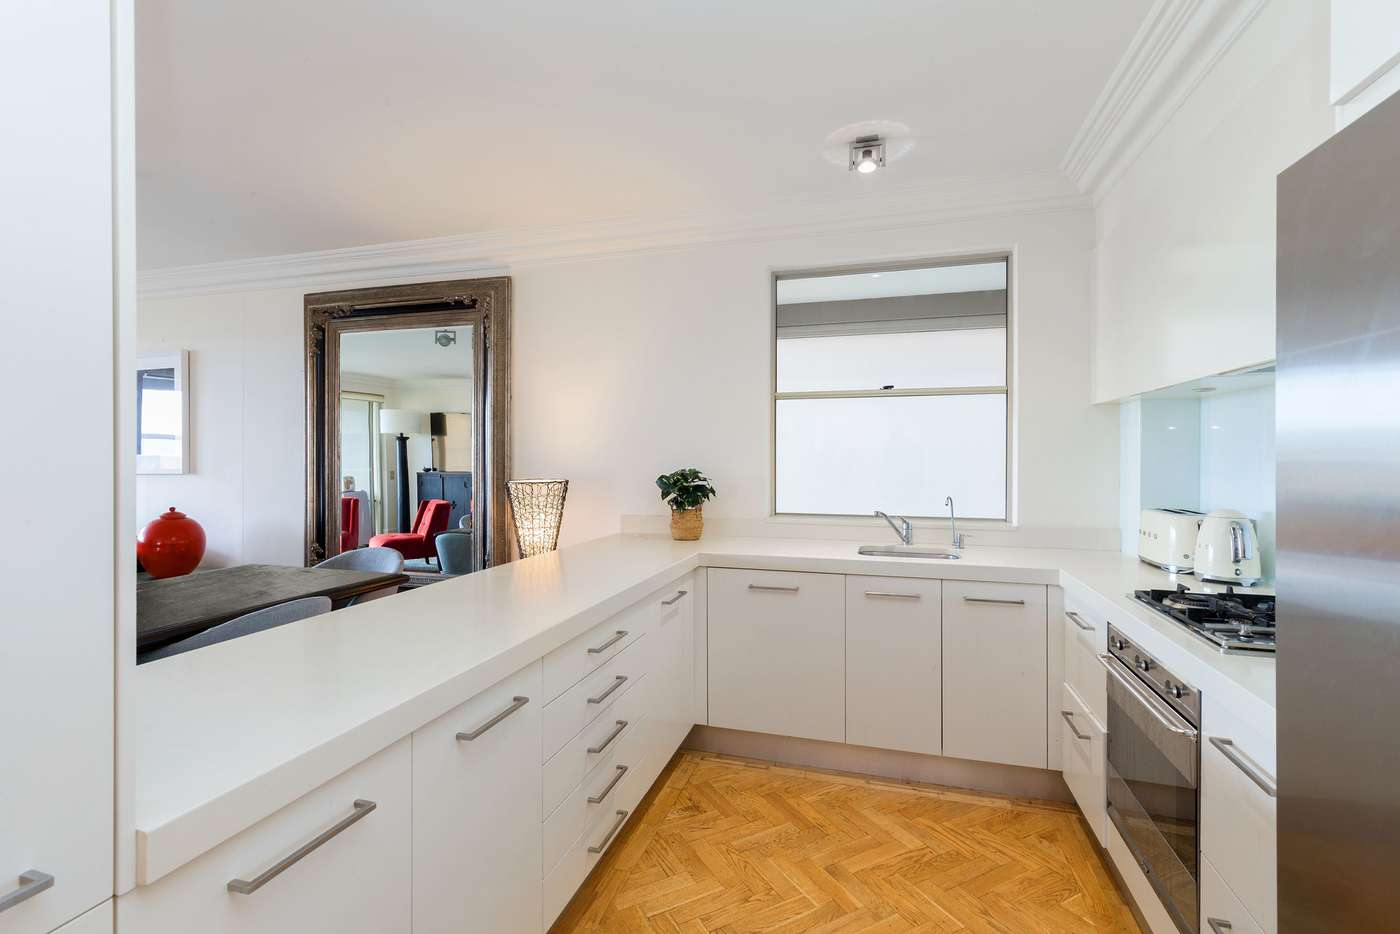 Fifth view of Homely apartment listing, 6/18 Macleay Street, Potts Point NSW 2011